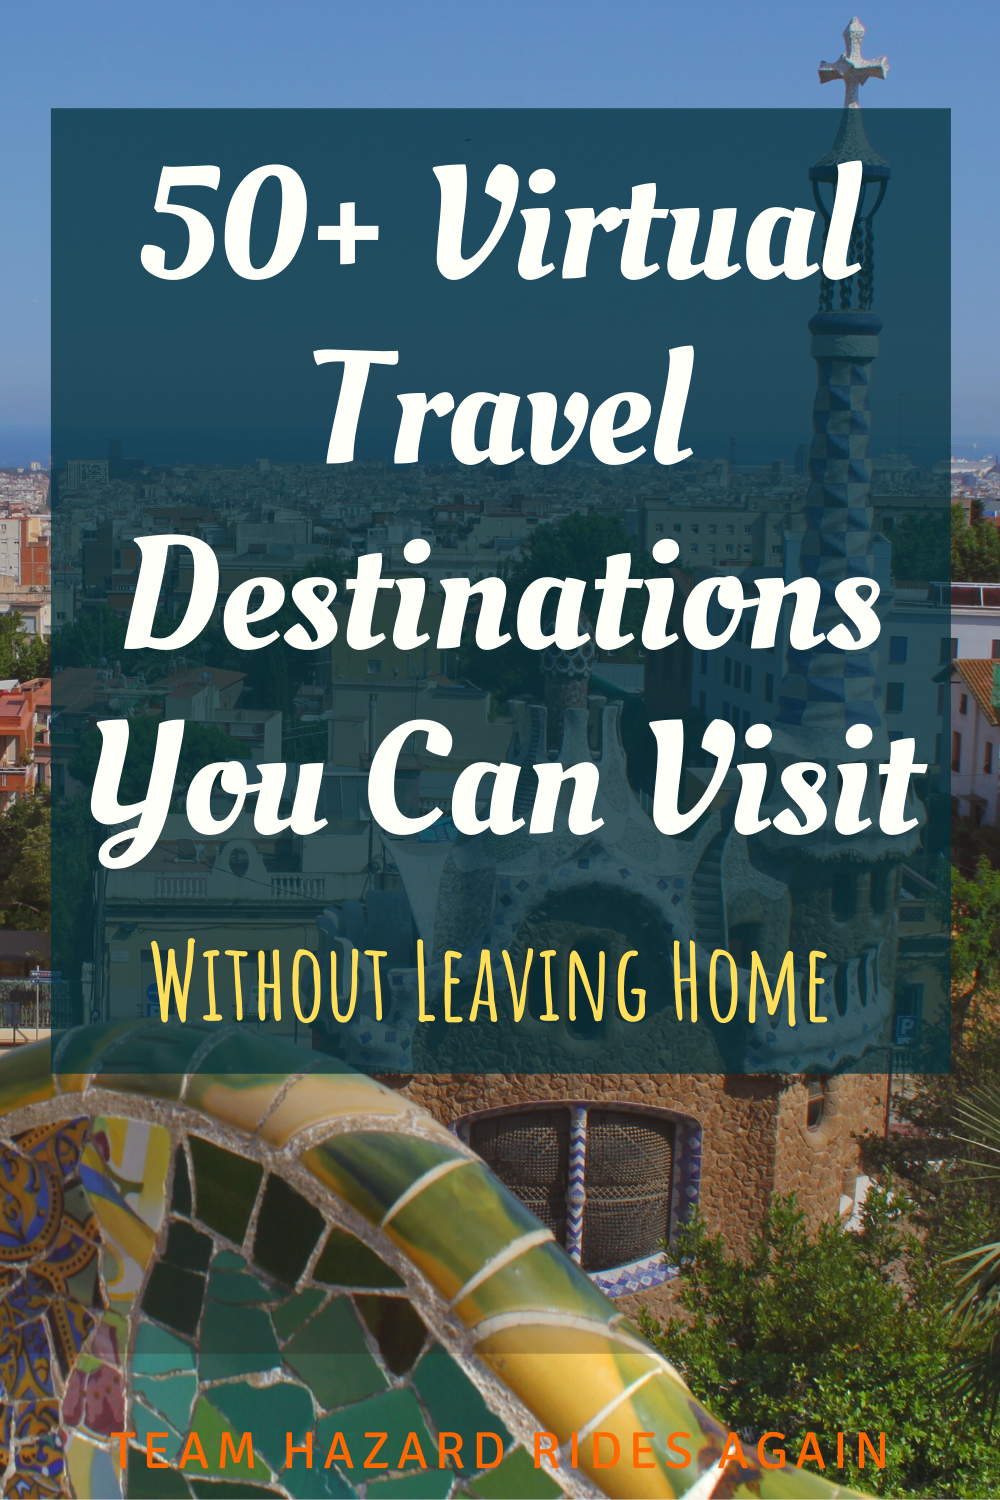 Can't go traveling right now but you desperately need a vacation? Escape on a virtual tour! Destinations and tourist sights all over the world have virtual tours you can take from the comfort of your couch. Easy travel. Safe travel. No packing or security checks required. If you have an internet connection, the world can come to you.  #worldtravel #virtualtour #3dvirtualtour #virtualreality #virtualtravel #futureisnow #virtualdestinations #virtualeurope #virtualtourism #tourism #freevacation